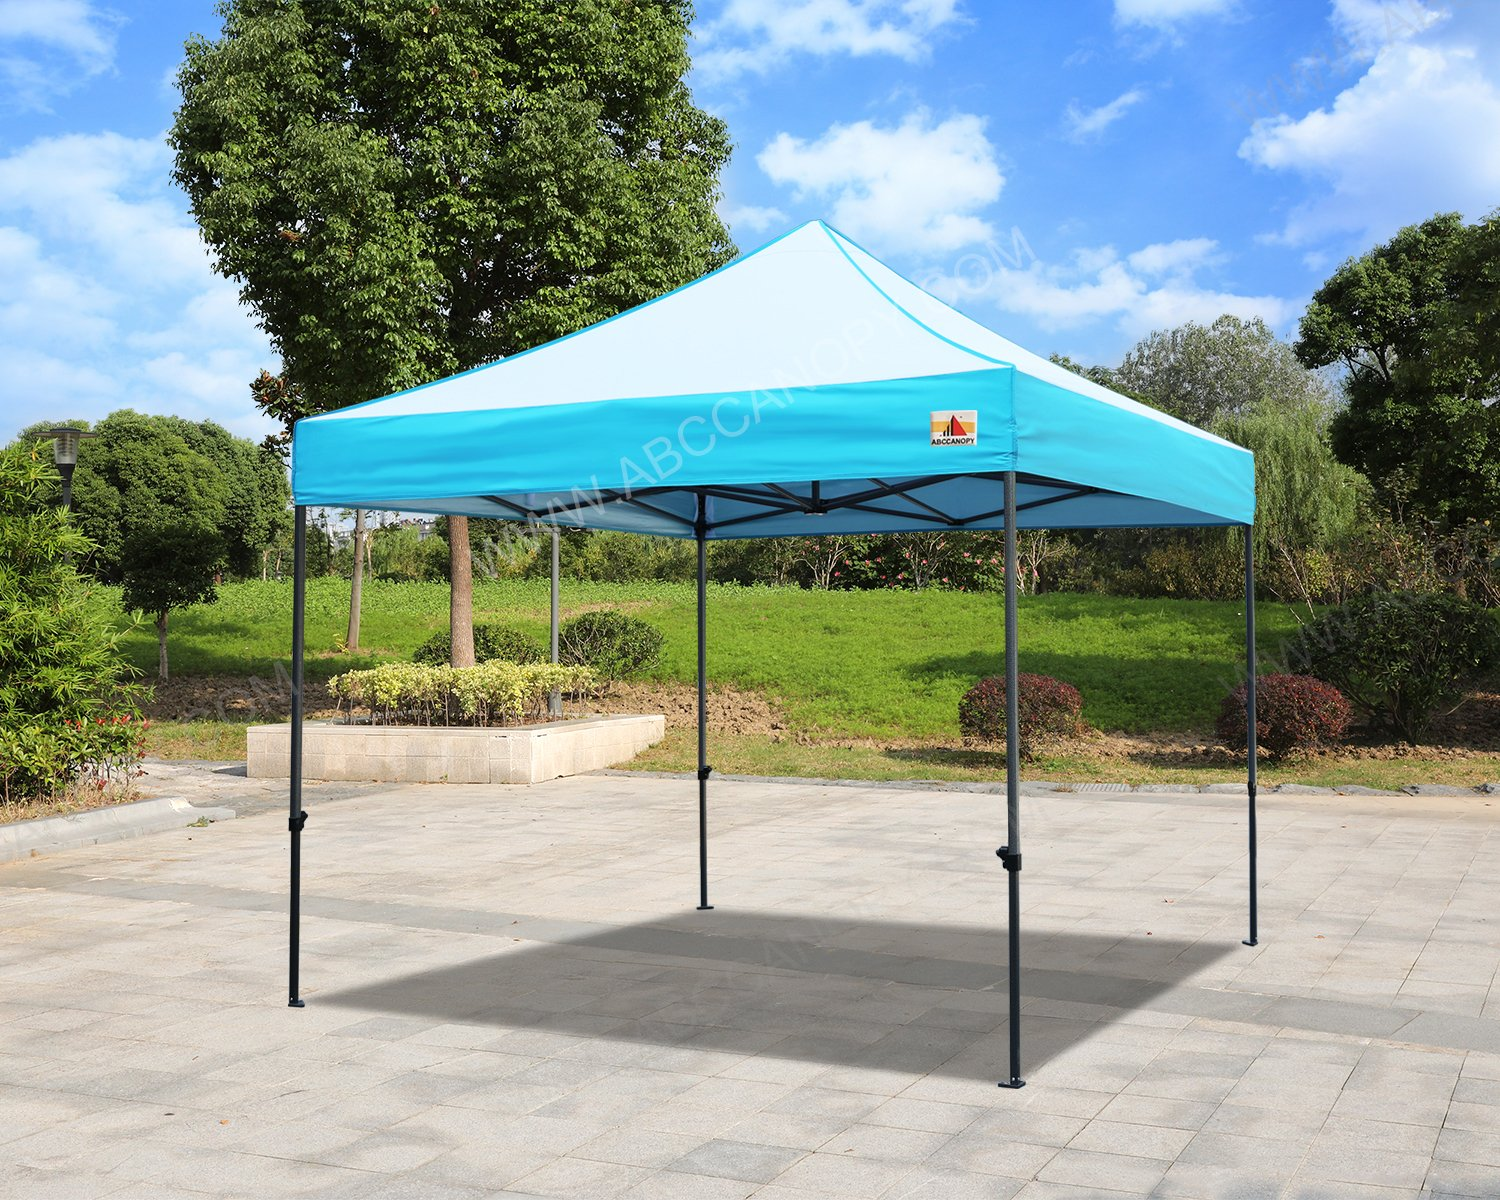 ABCCANOPY King Kong Serie Borde Mix Color toldo Gazebo Refugio: Amazon.es: Jardín